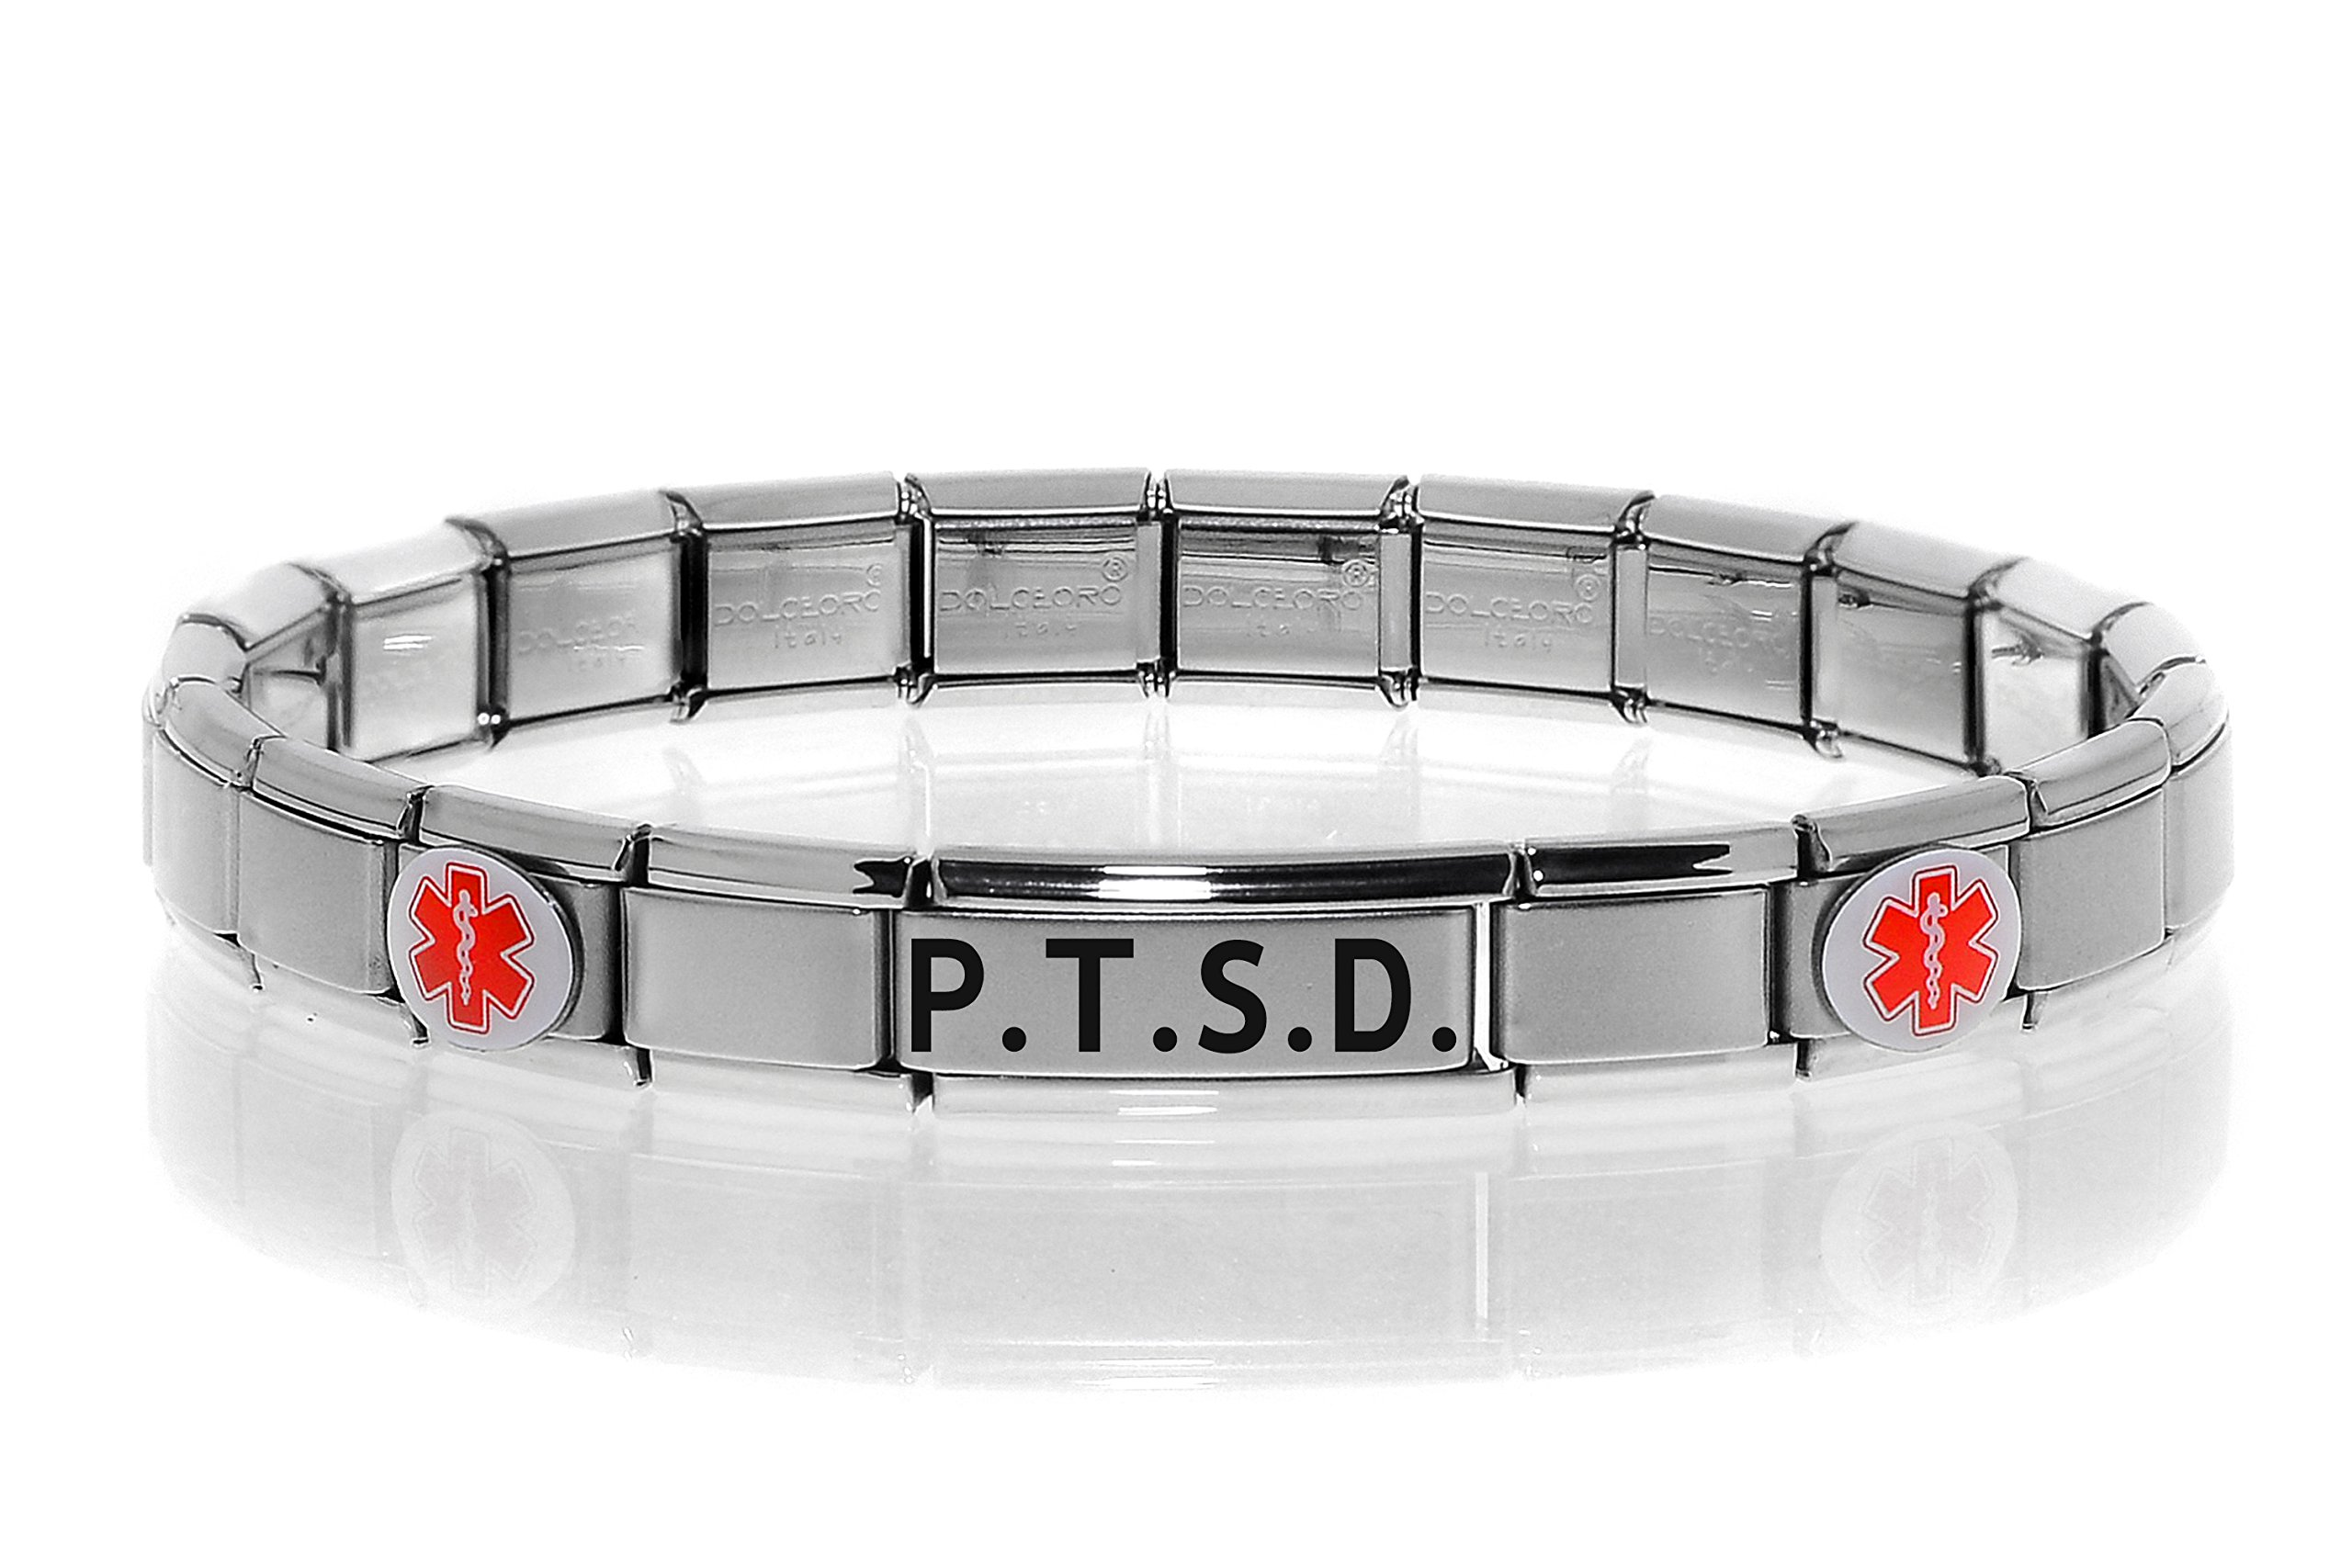 Dolceoro PTSD Post-Traumatic Stress Disorder Medical Alert Bracelet - Stainless Steel Stretchable Italian Style Modular Charm Links